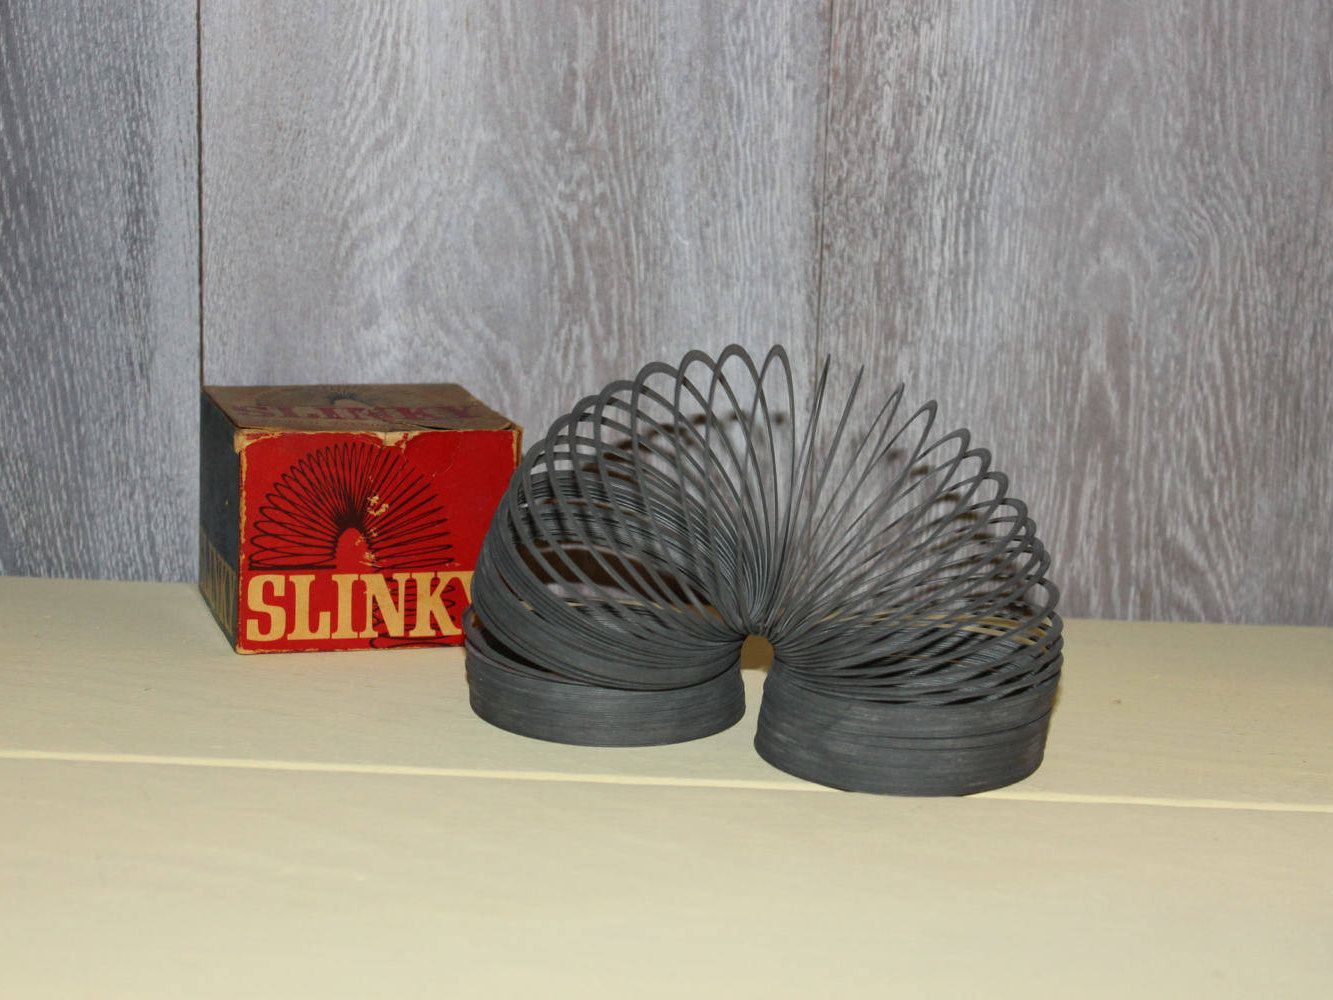 Vintage Metal Slinky in Original Box by James Ind USA Mid Century 50s Toy by CaliCollectables on Etsy